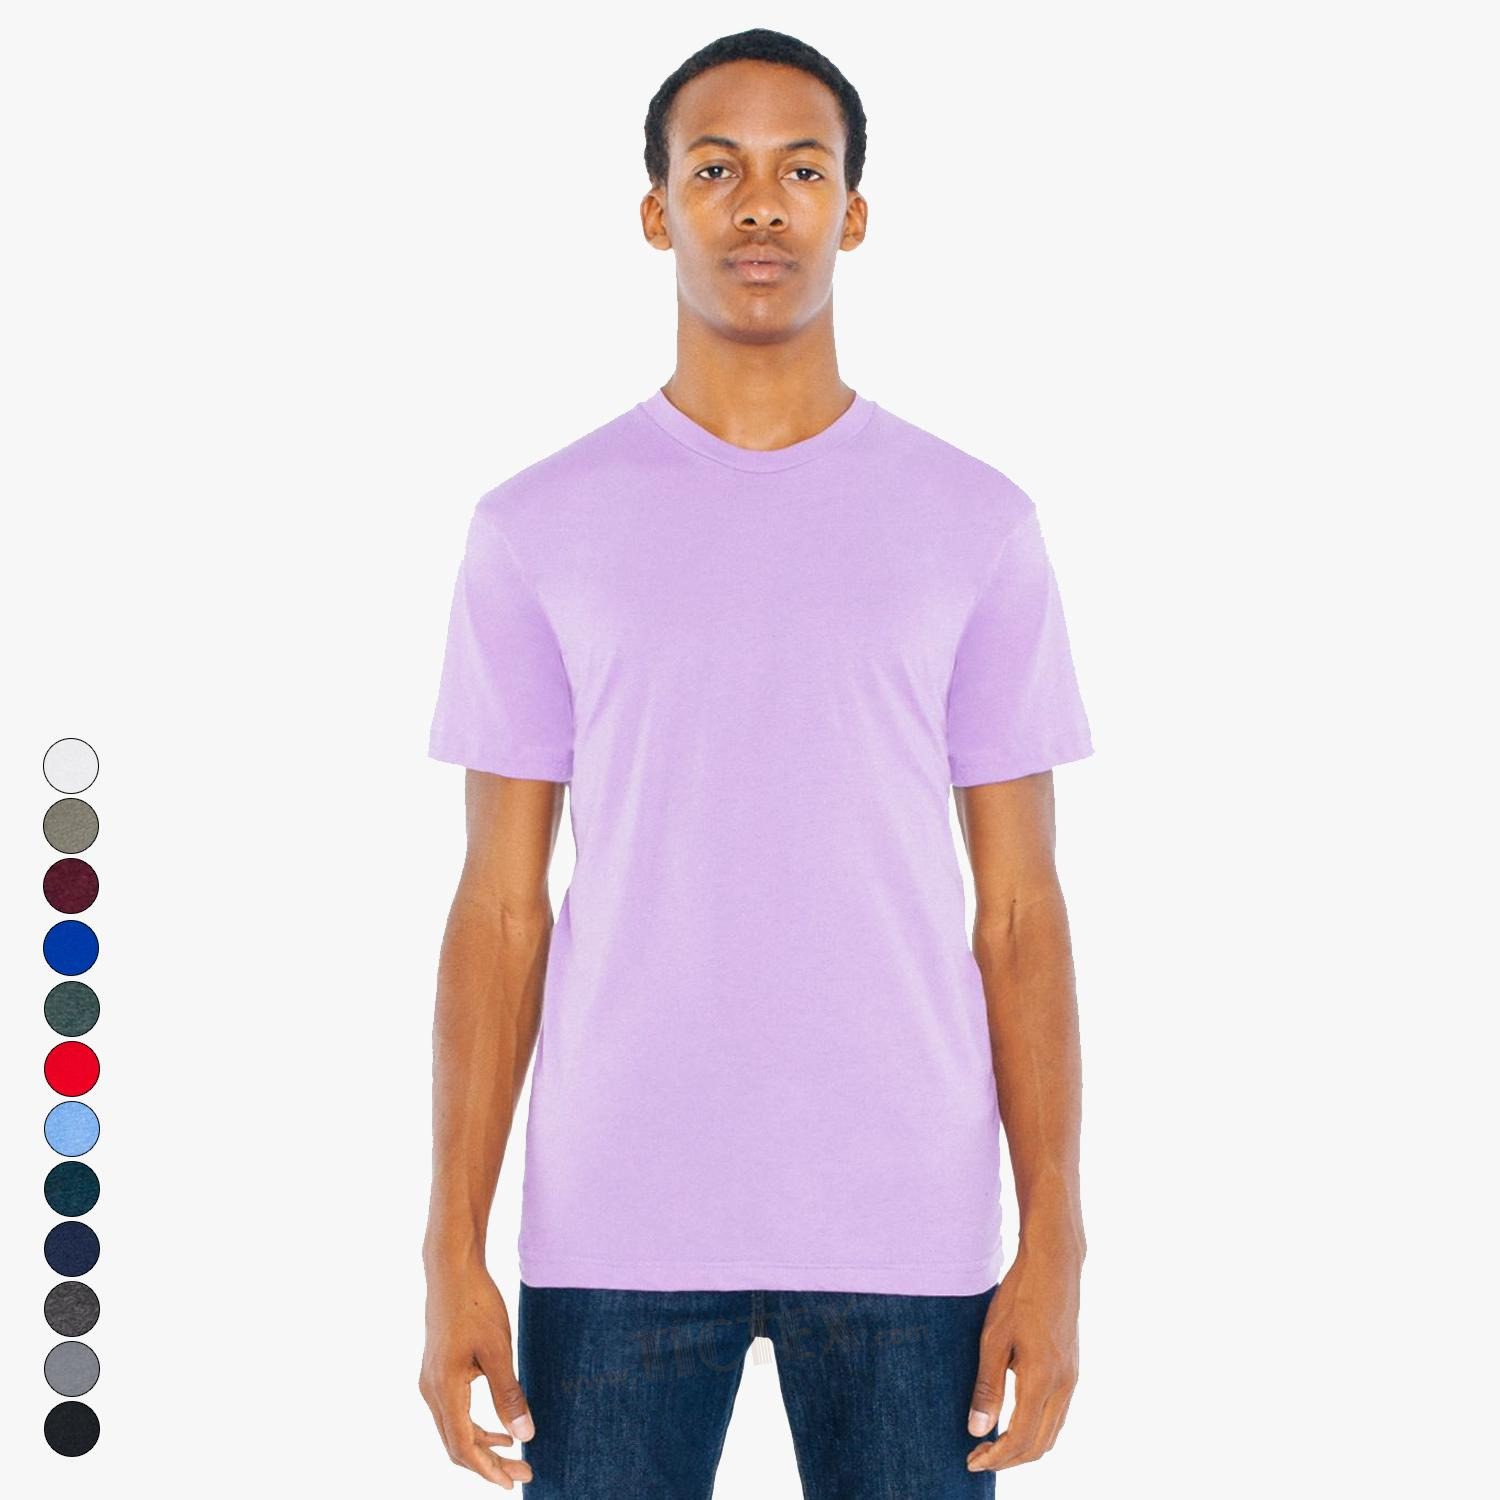 American Apparel Unisex Poly Cotton T Shirt